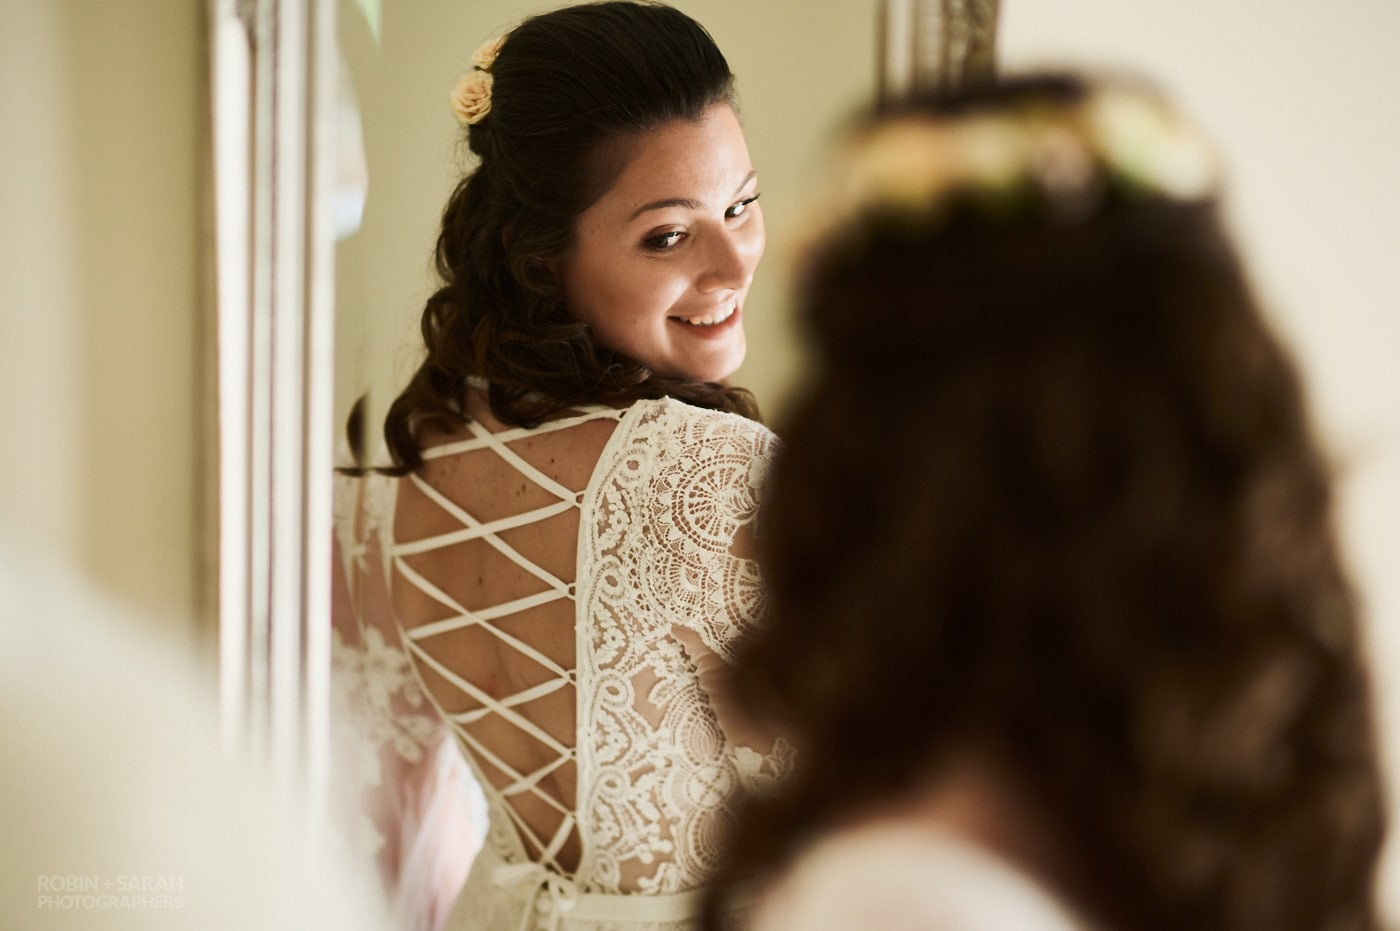 Bride looks at the bac of her wedding dress in mirror